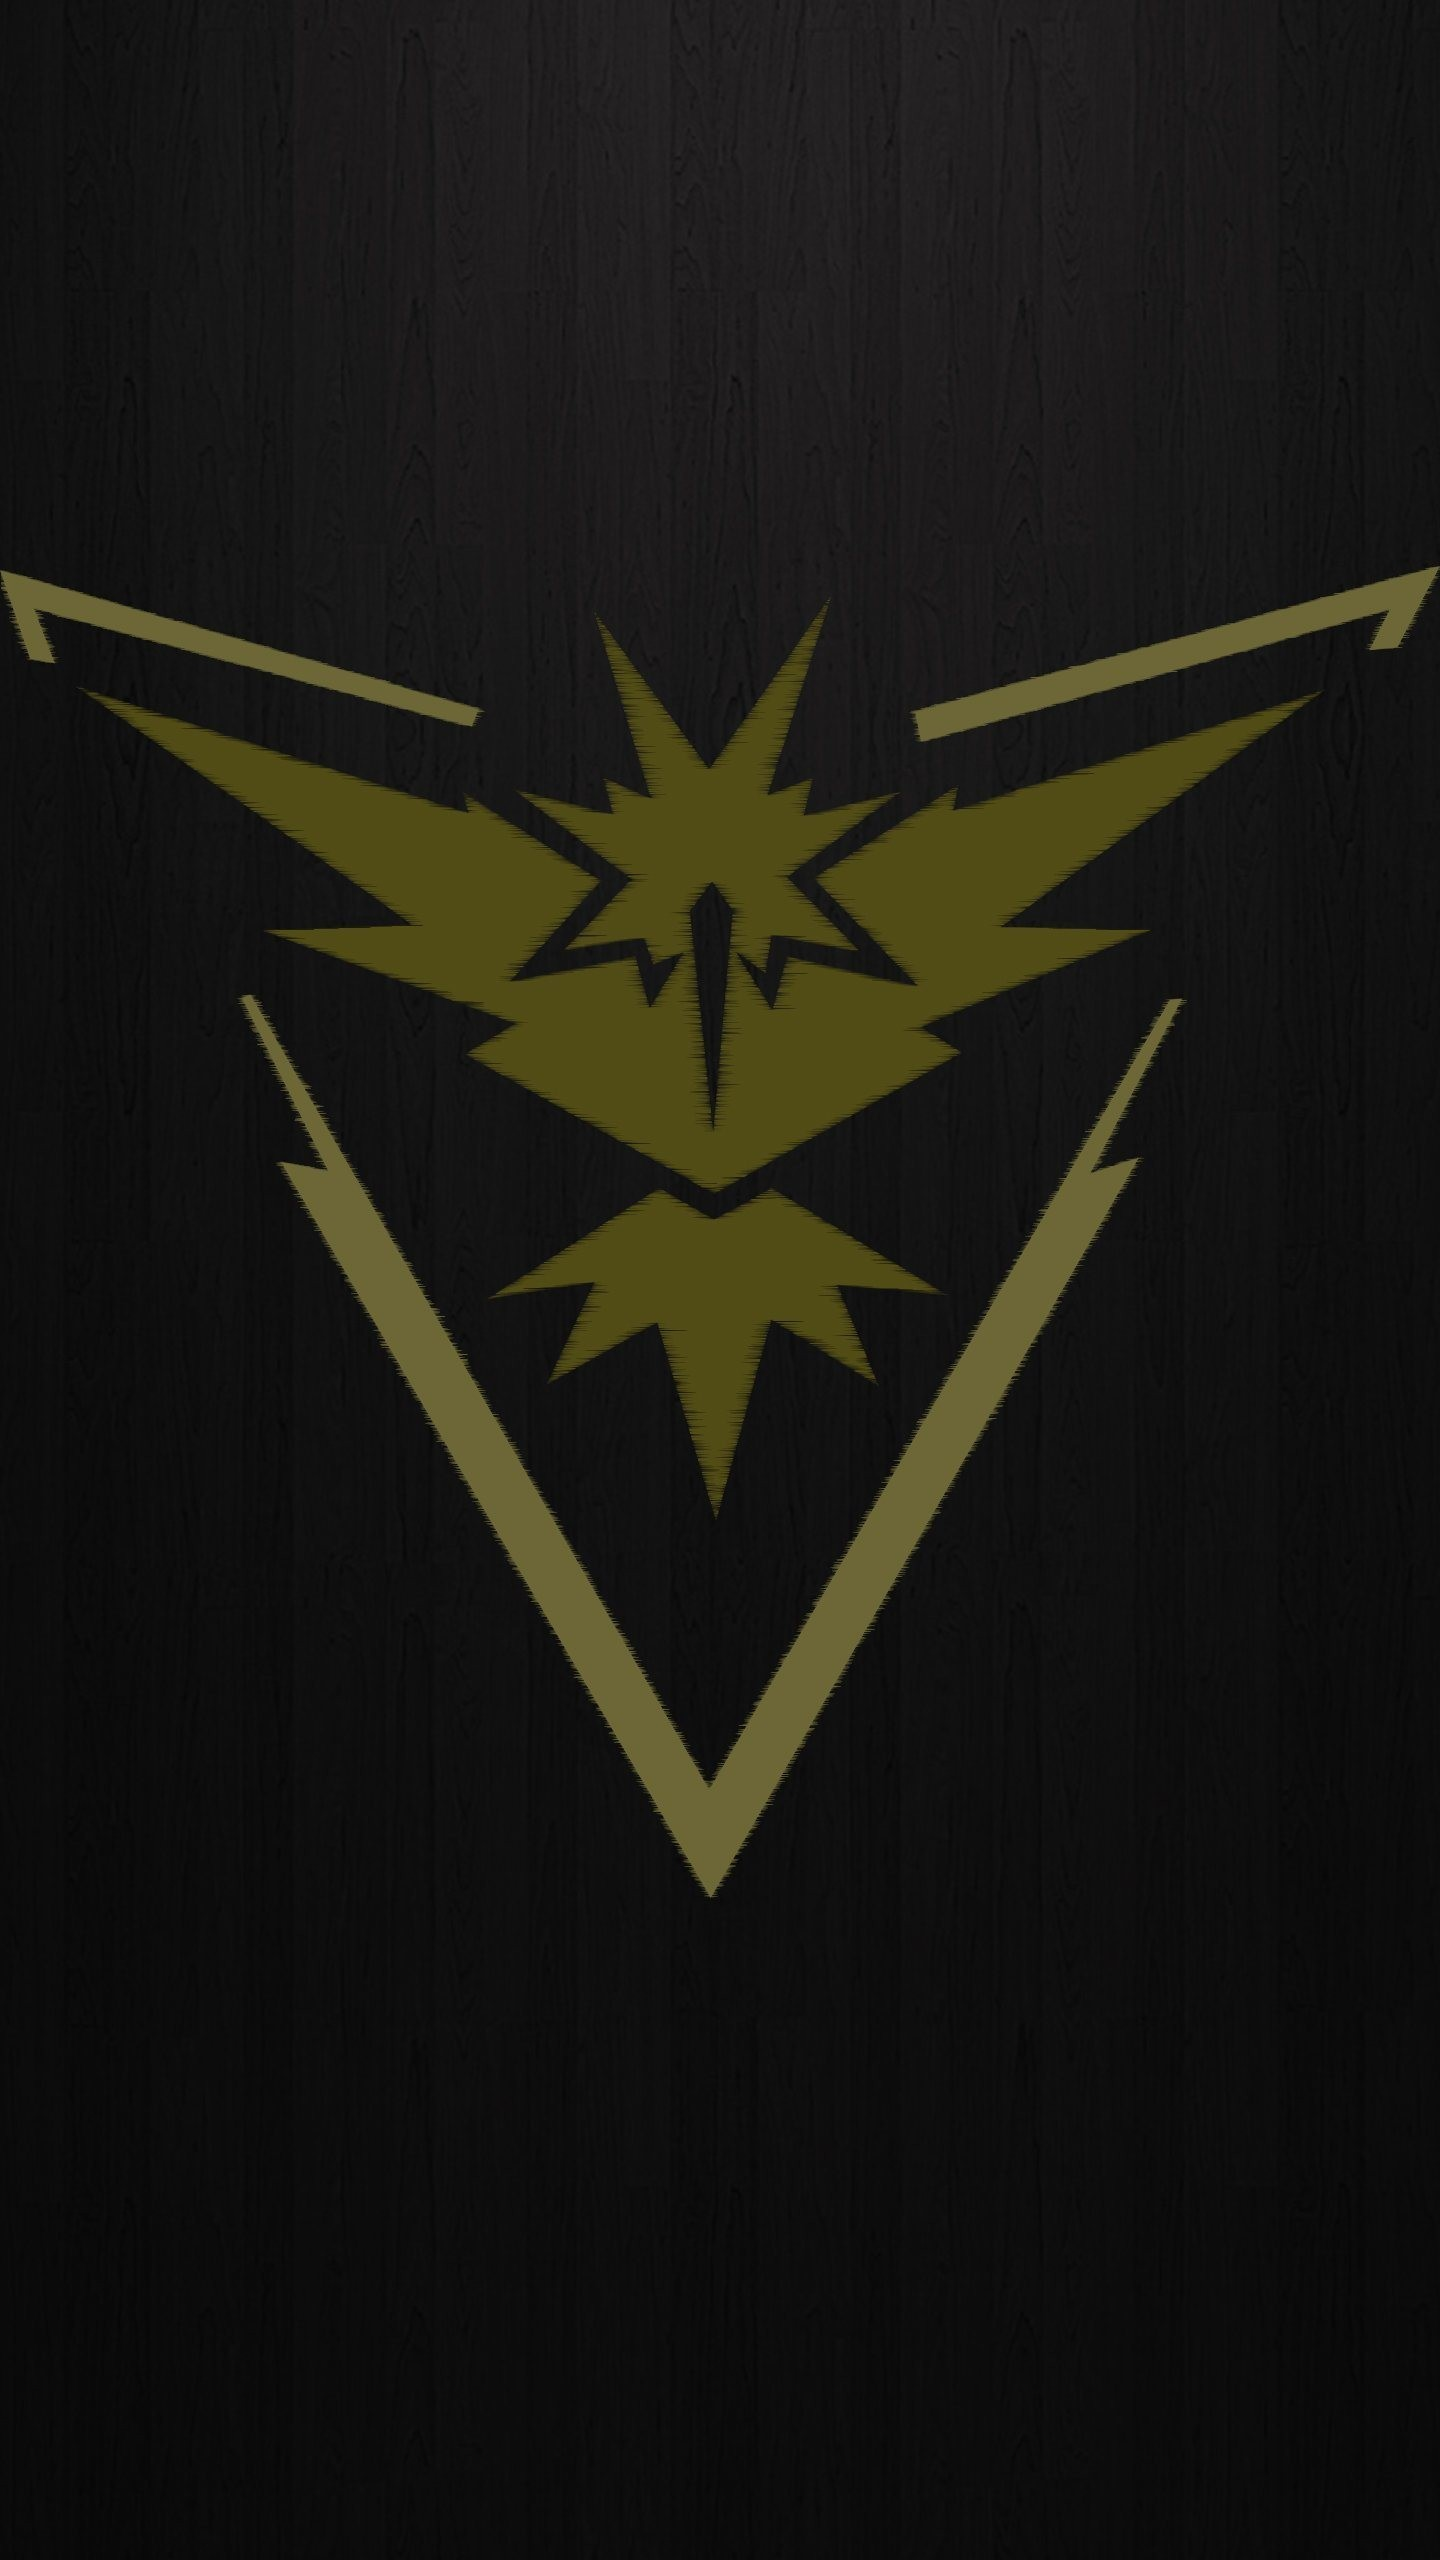 instinct team hd wallpapers for lg g5 wallpapers pictures